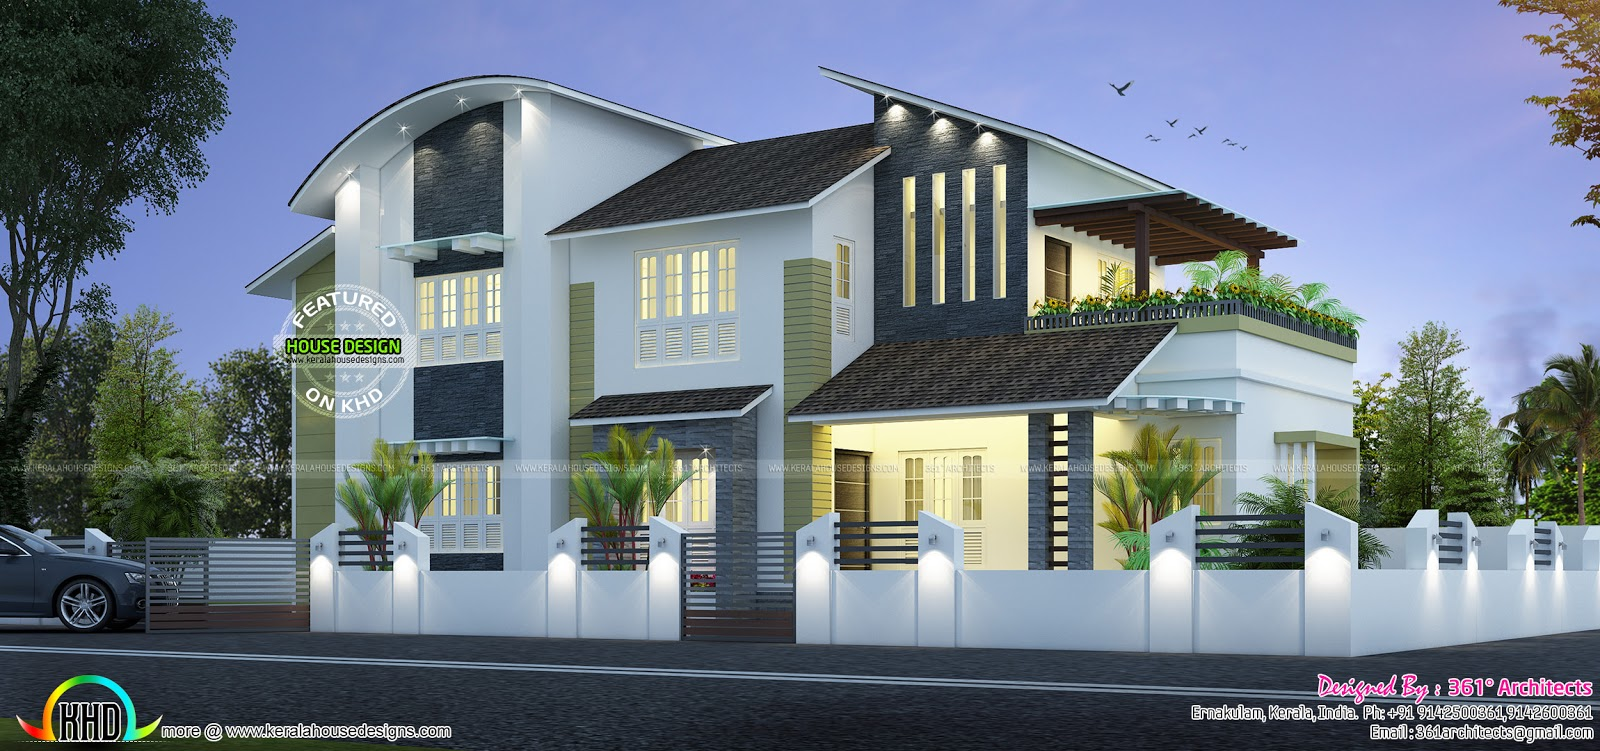 New modern house 35 lakhs kerala home design and floor plans for New contemporary home designs